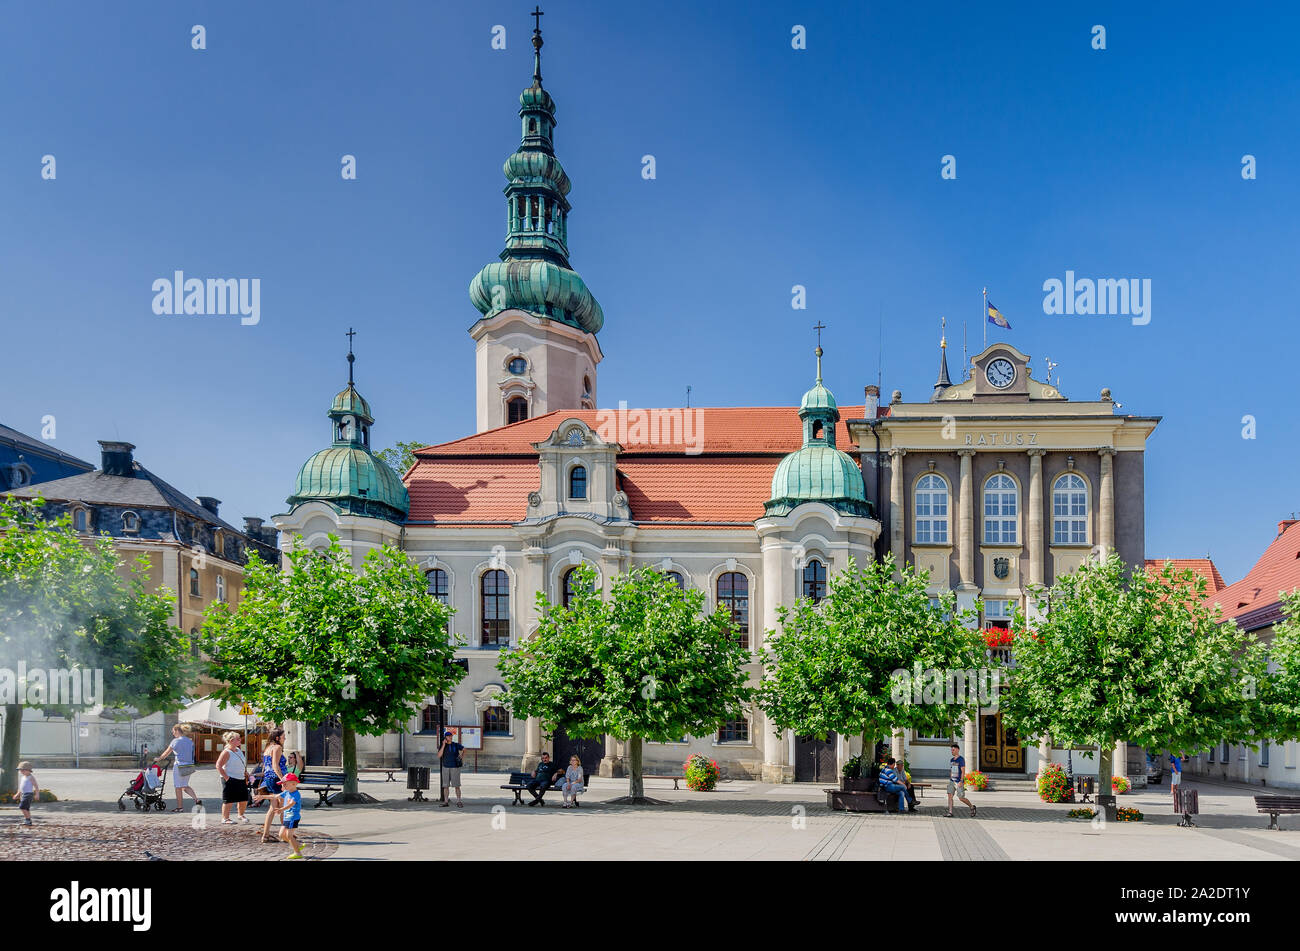 Pszczyna (ger.: Pless), Silesian province, Poland. Lutheran church and the town hall, Marketplace square. Stock Photo